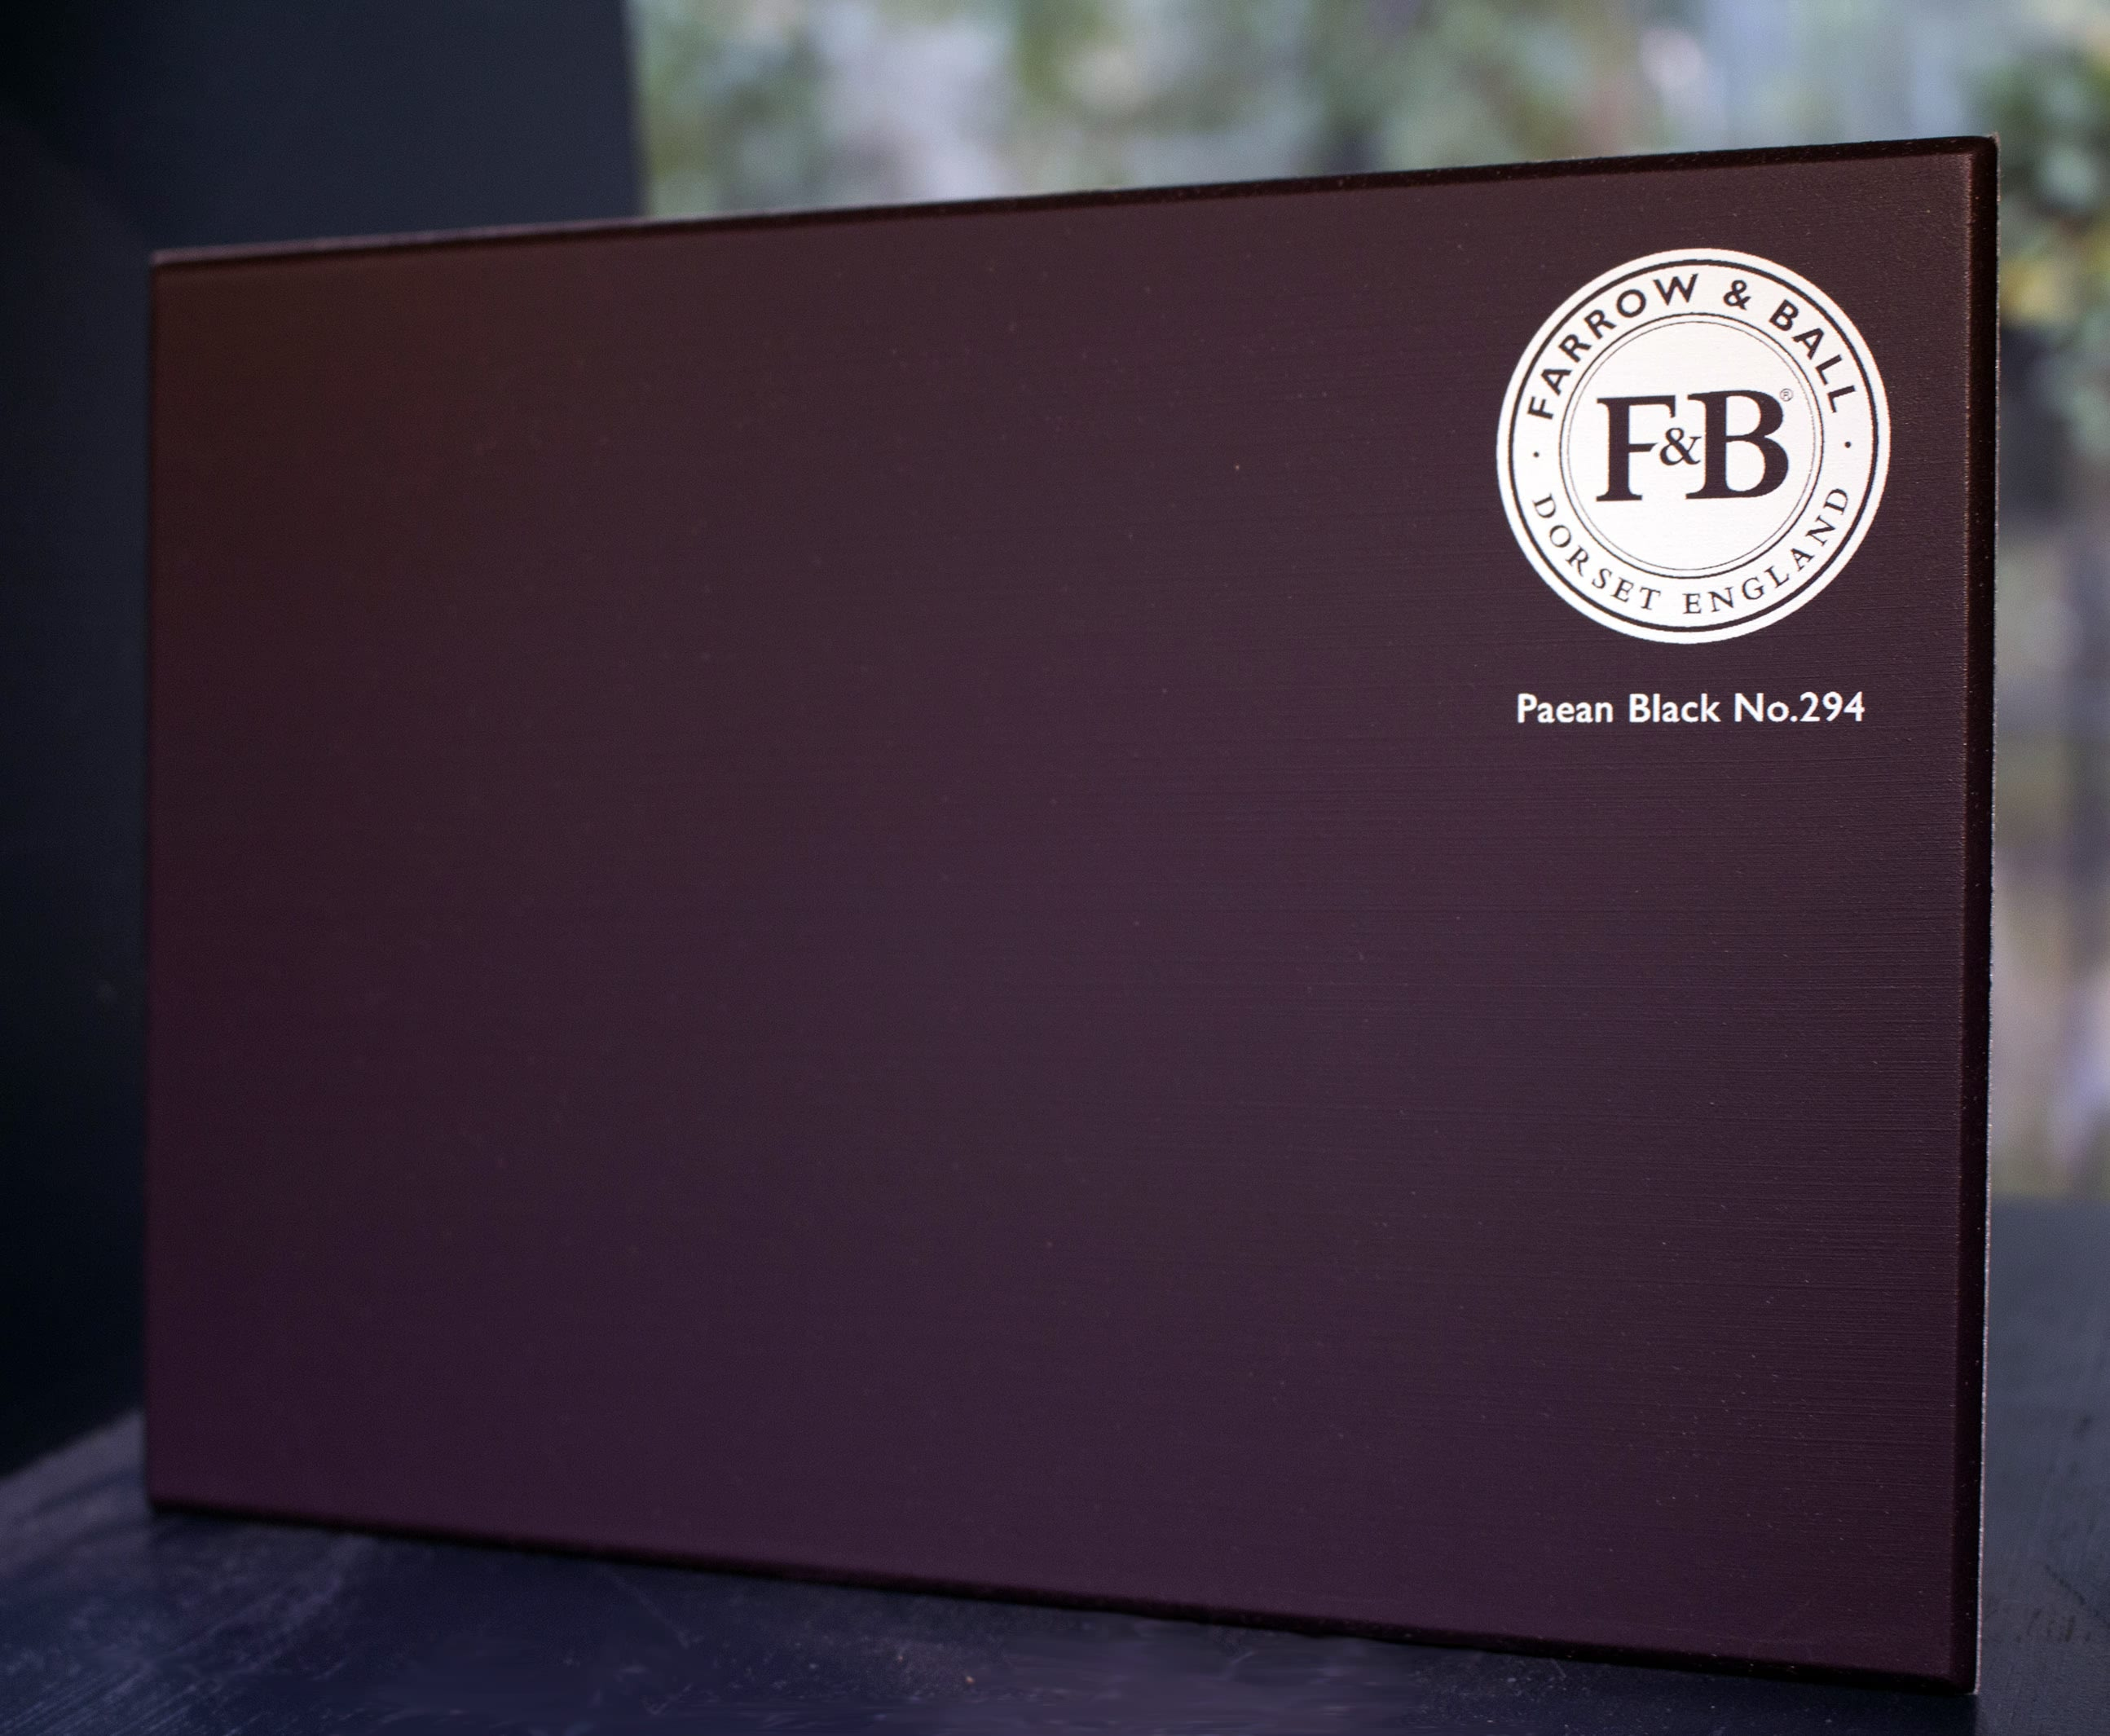 farrow&ball, farrow and ball, paint, decorating, paint brush,paean black